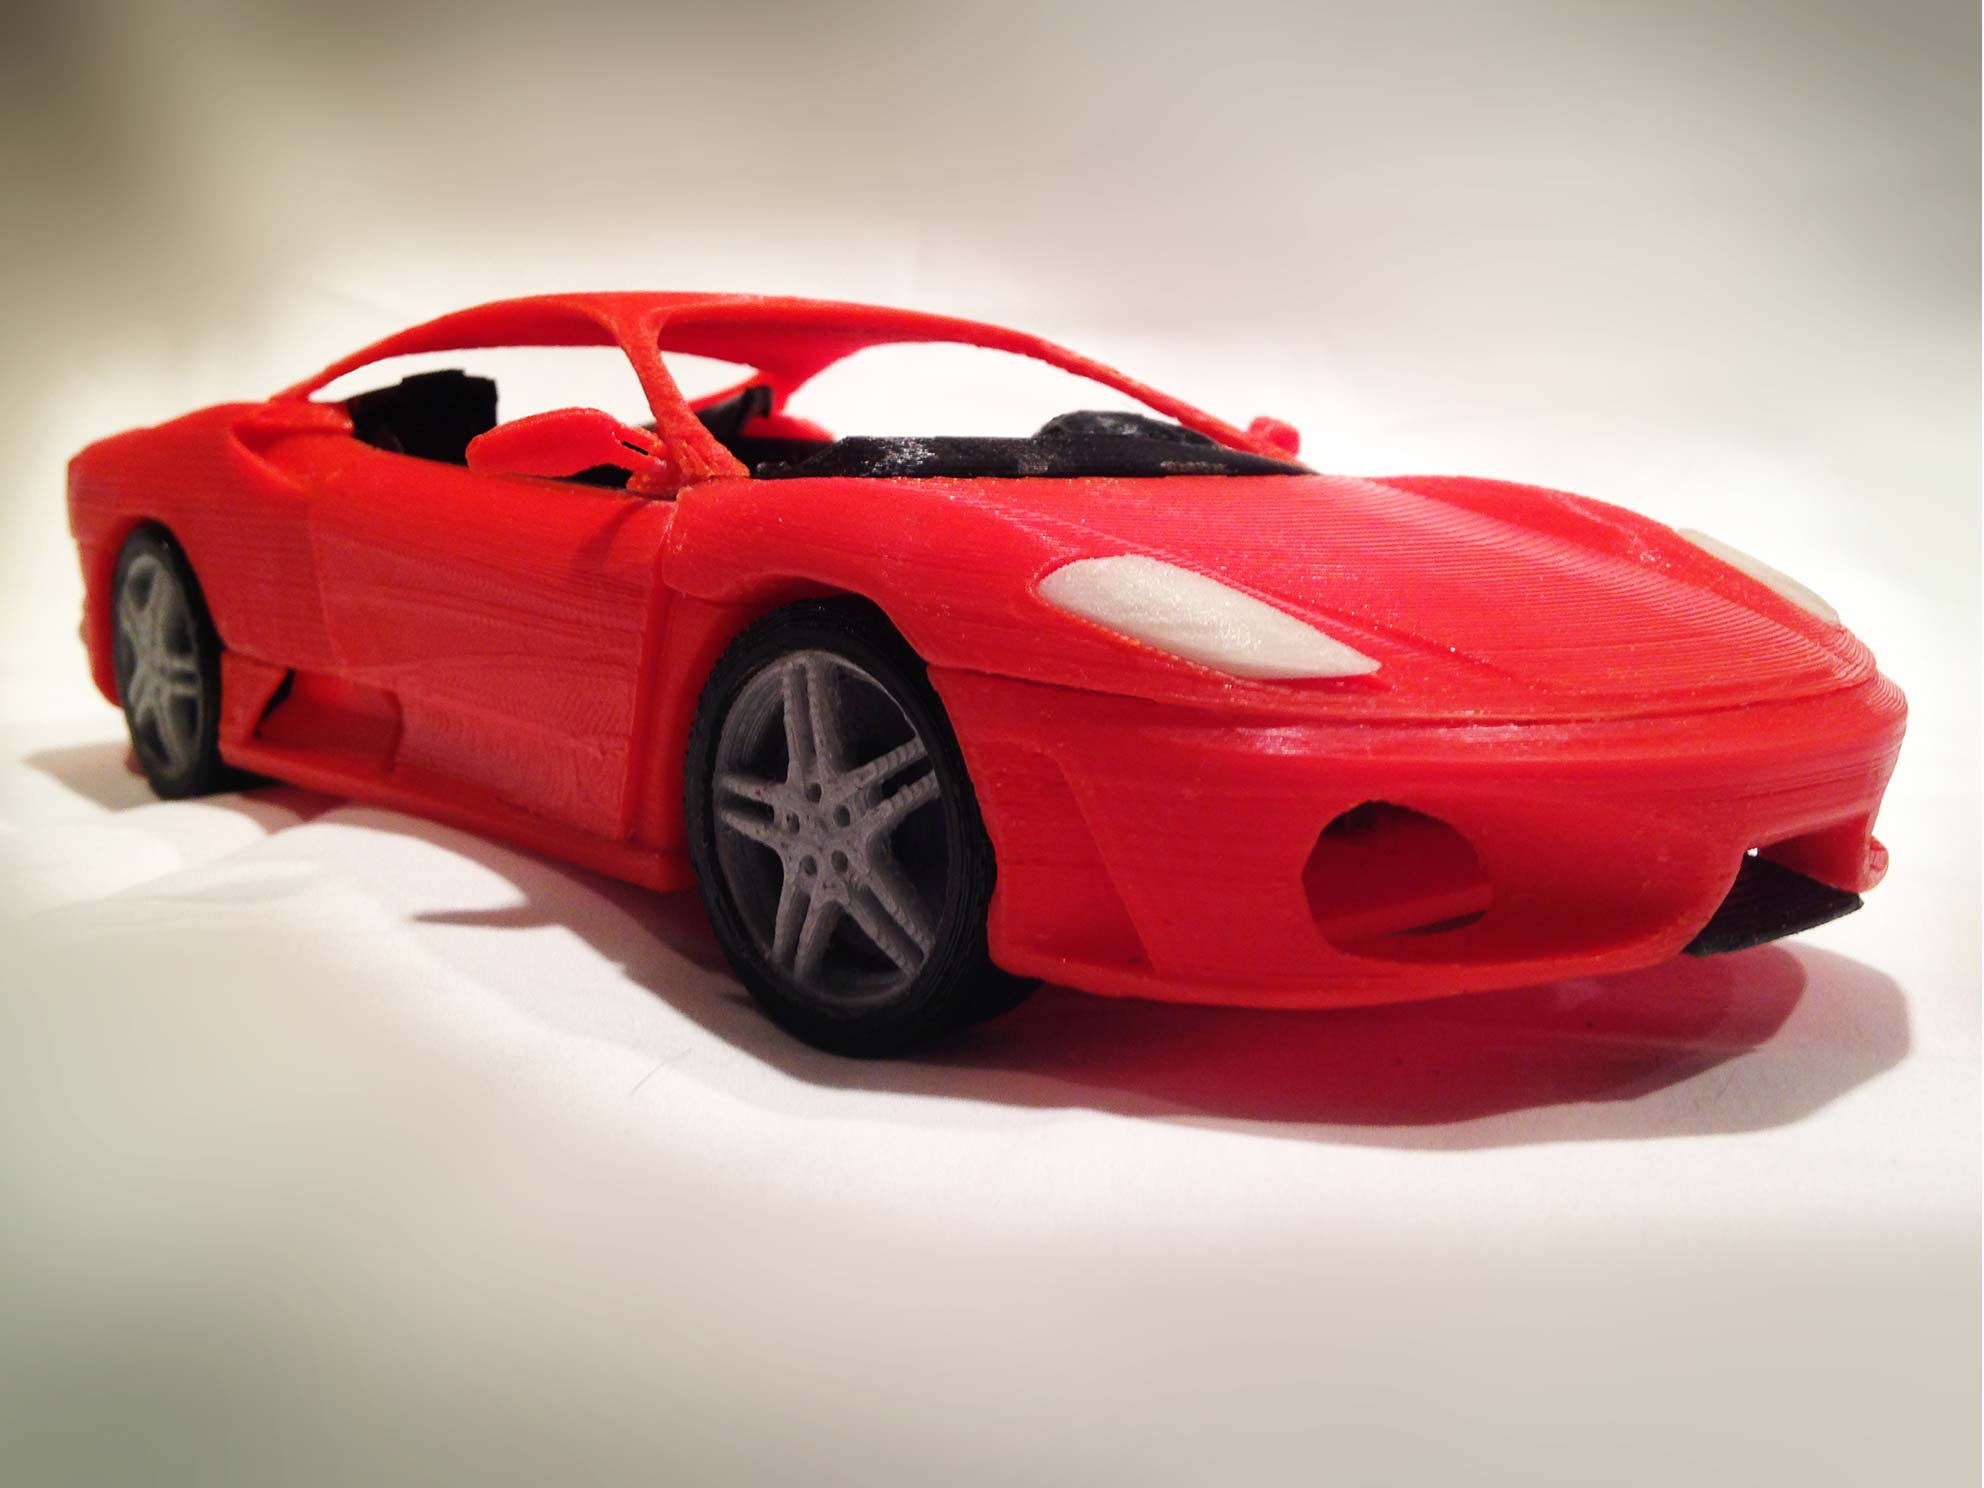 Italian Sports Car Model @ Pinshape